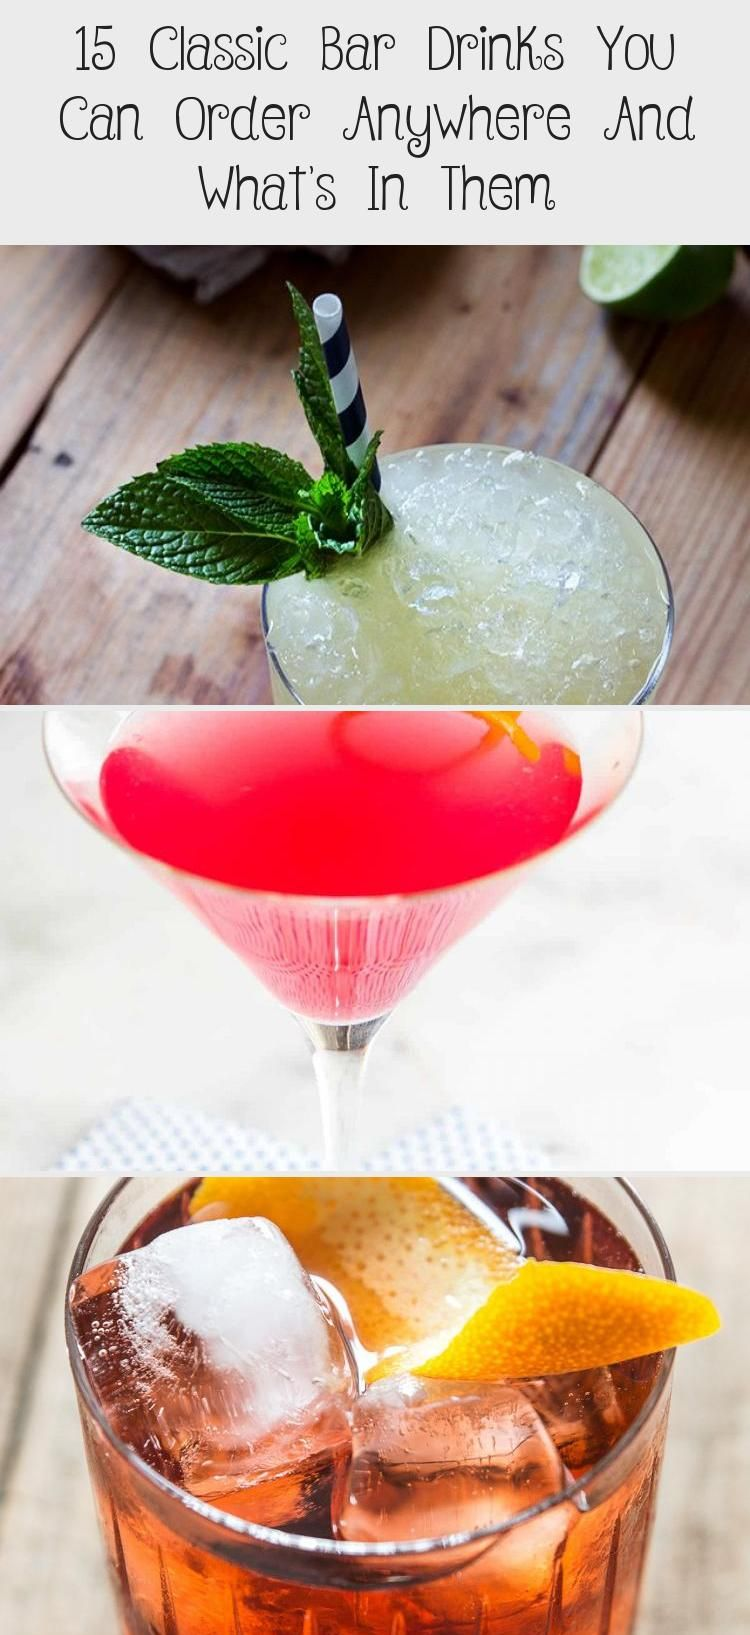 15 Classic Bar Drinks You Can Order Anywhere And What's In Them – Society19 #Chr…